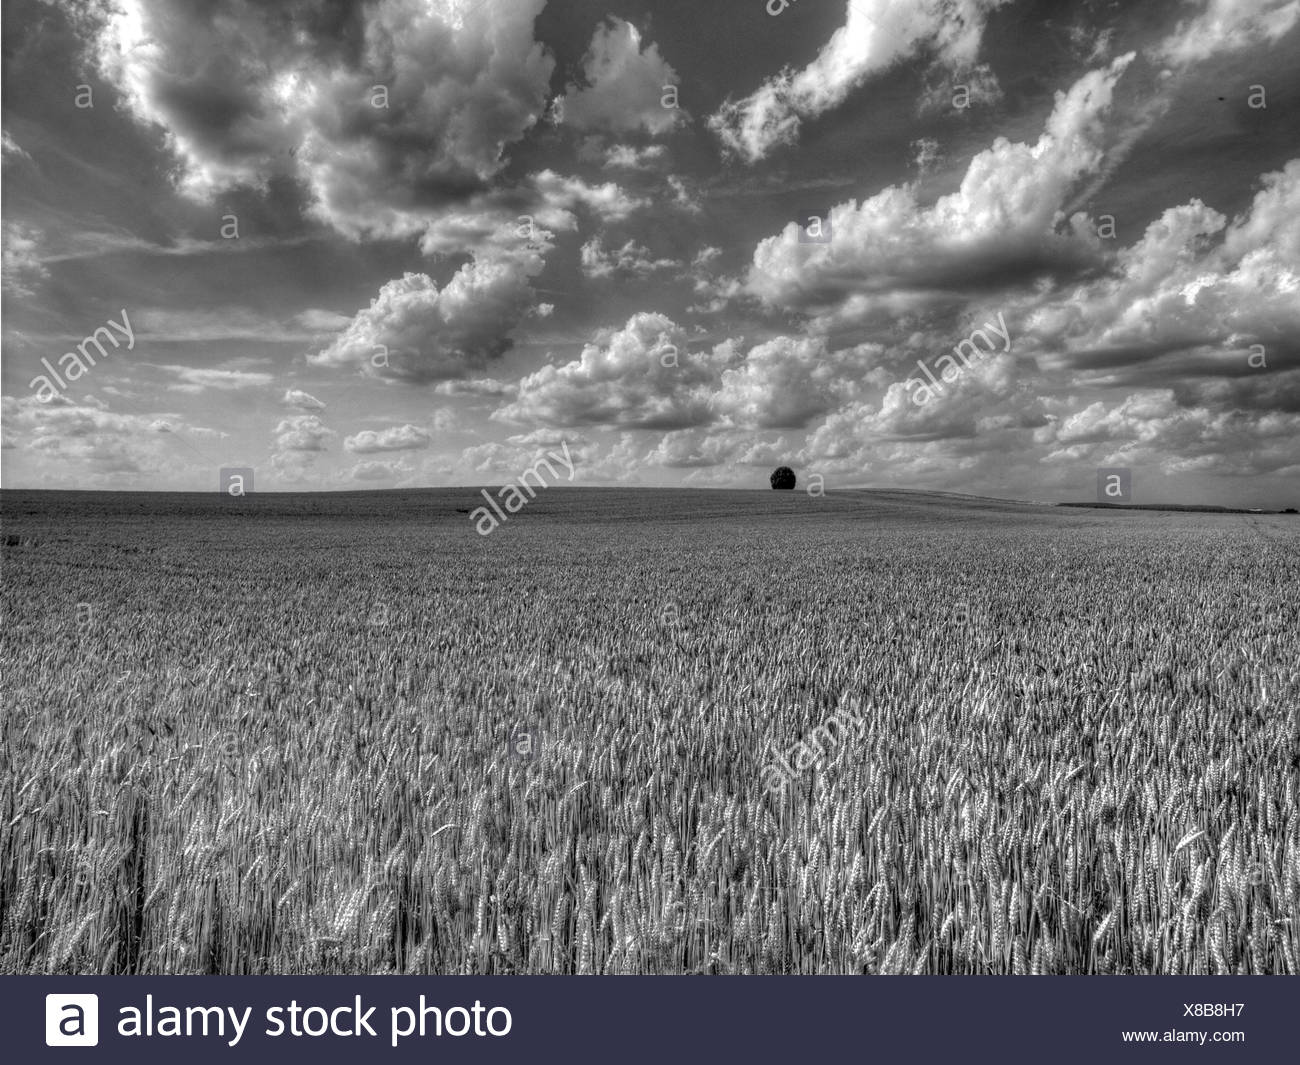 Lime-tree, black-and-white, wheat field, clouds, Oberglatt, wheat, field, canton Zurich, Switzerland - Stock Image